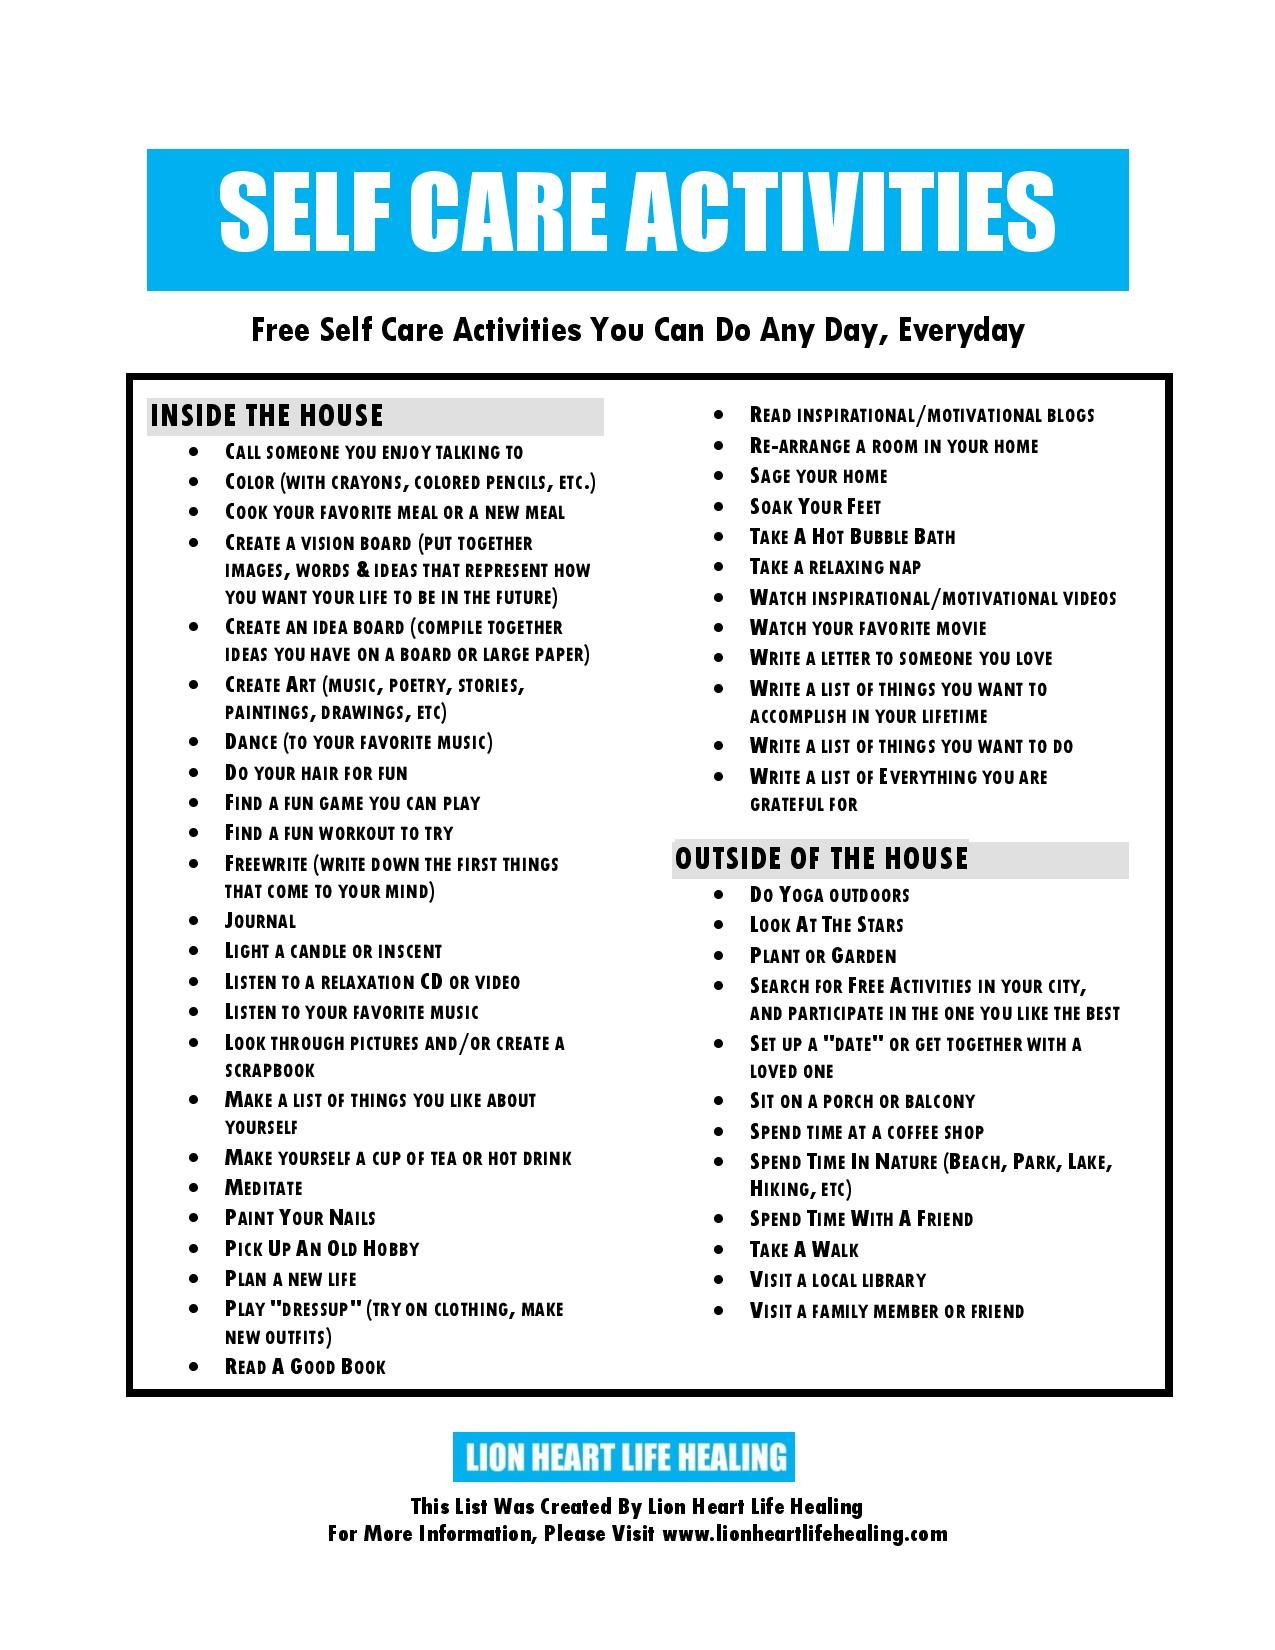 Worksheets Self Care Worksheets self care plan printable worksheet worksheets for school signaturebymm